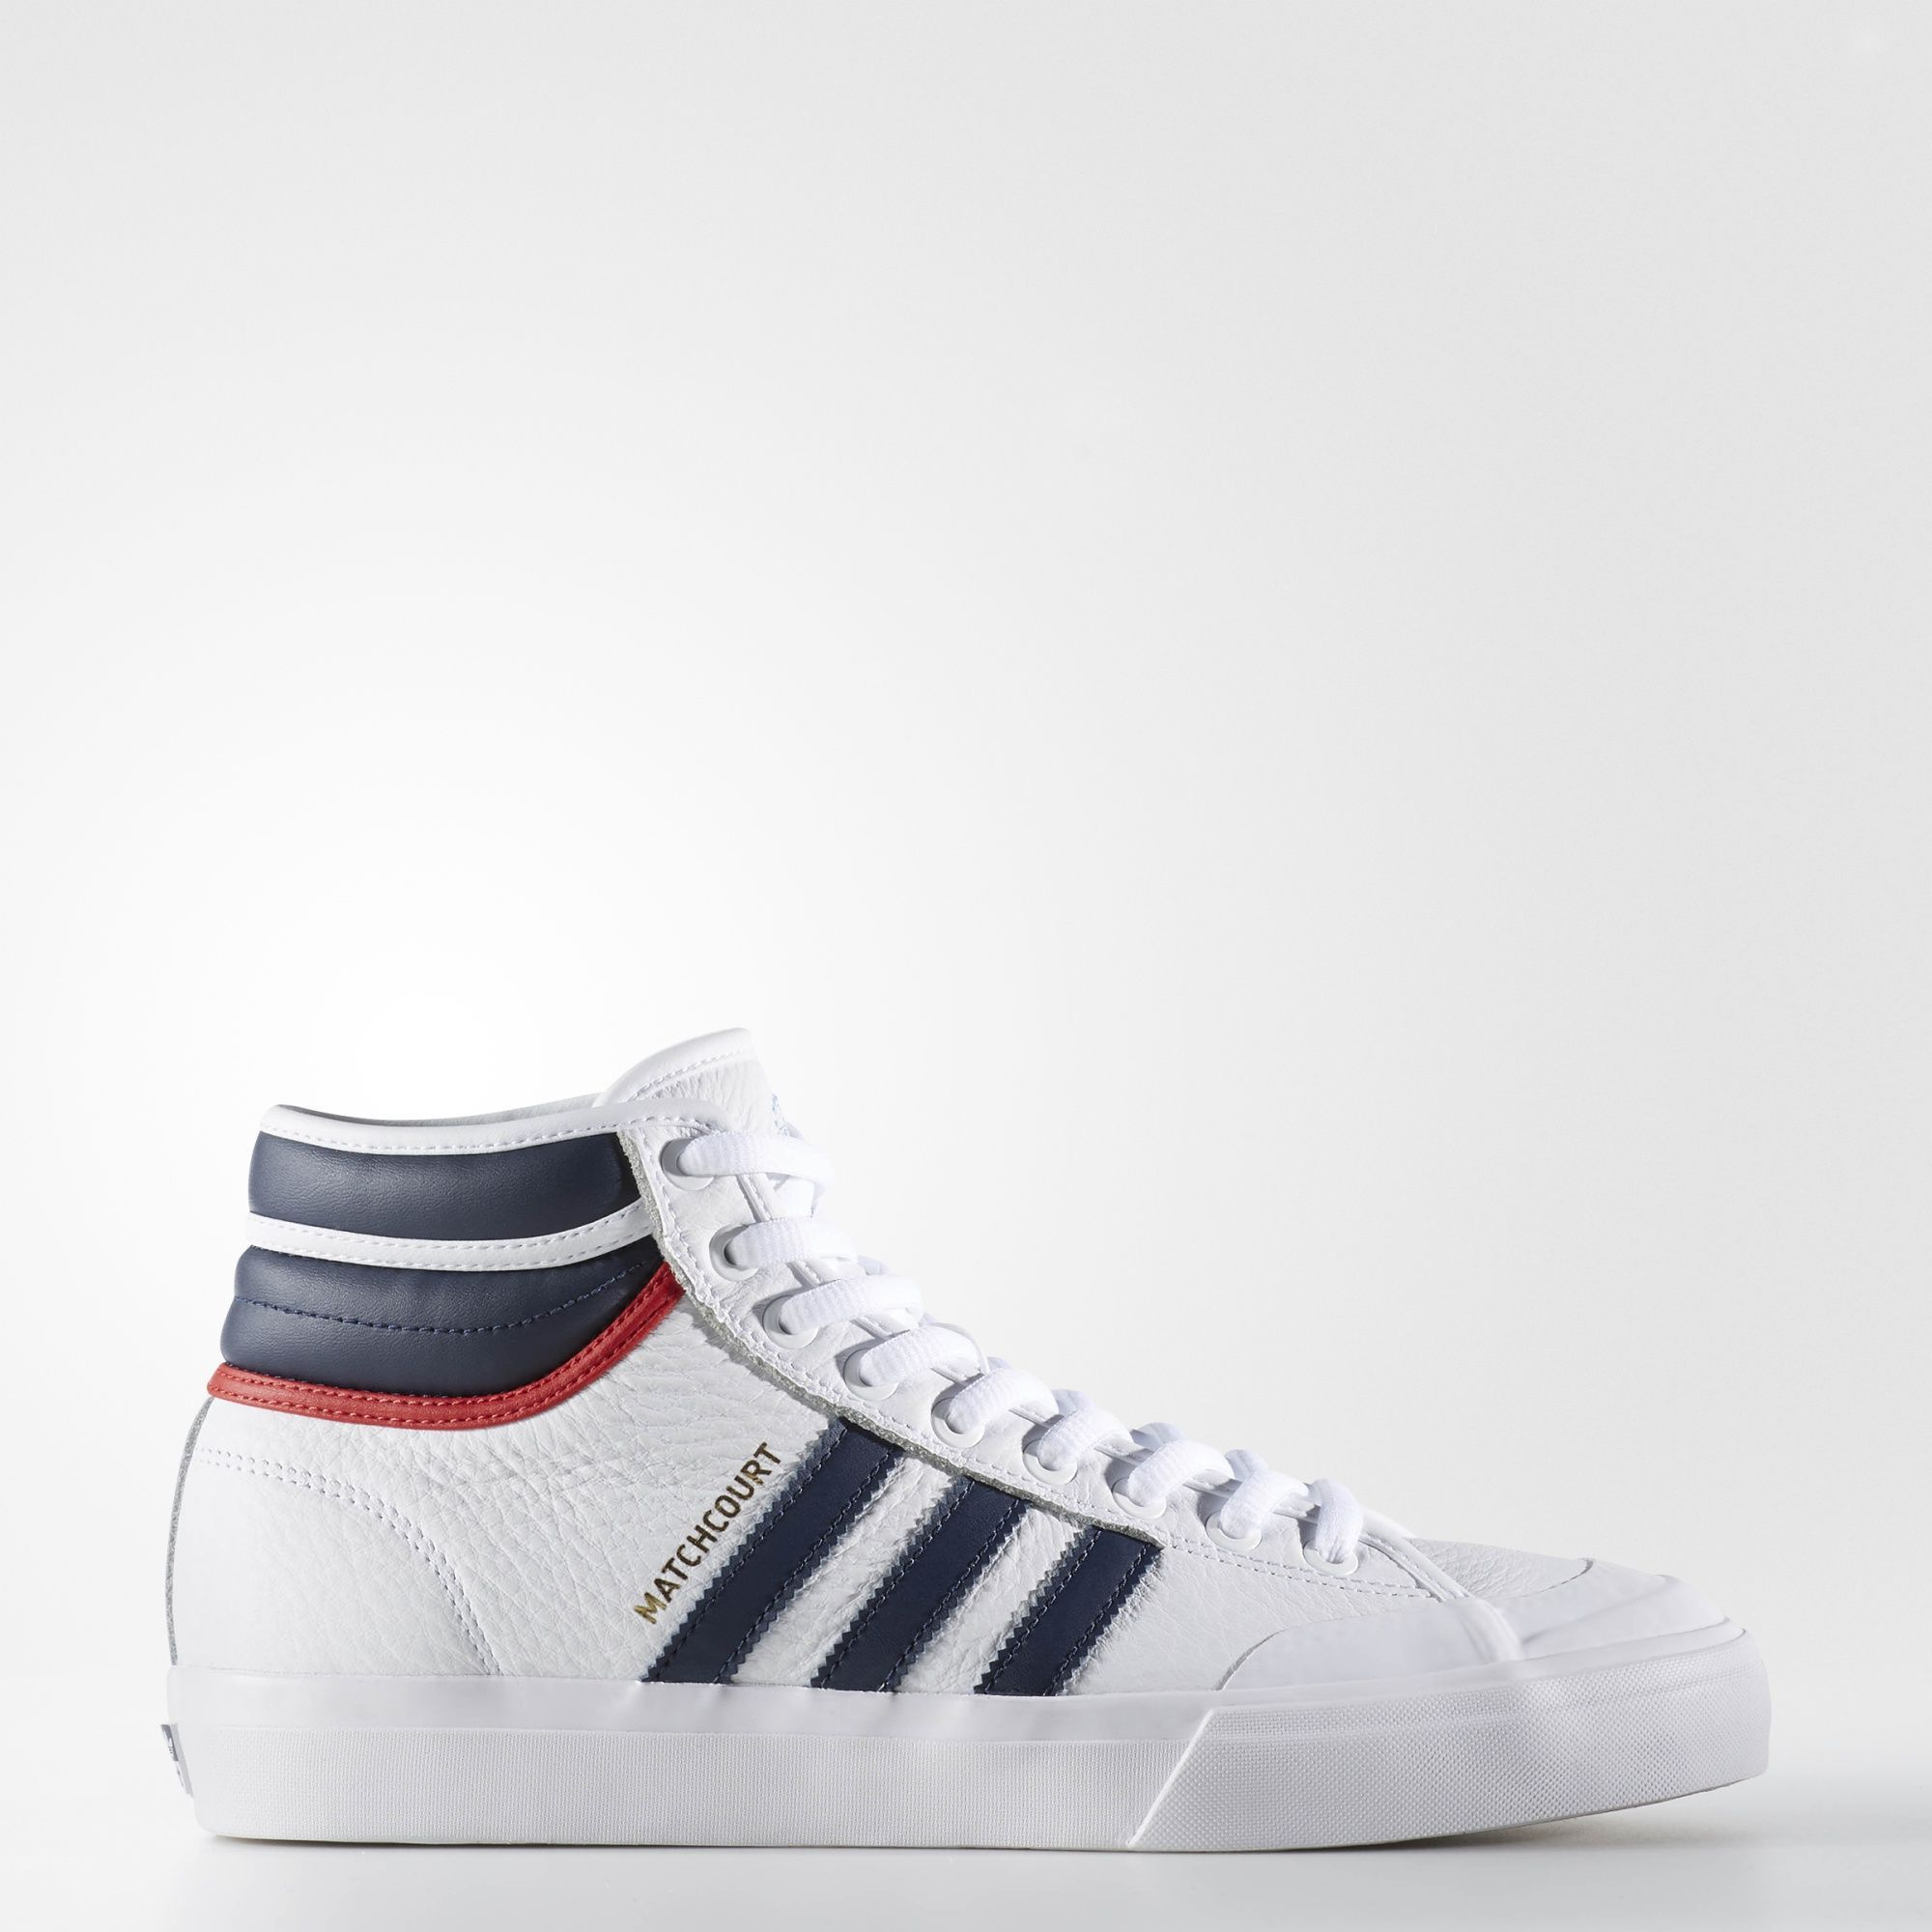 adidas Adidas Originals Matchcourt High Rx2 Sneakers In